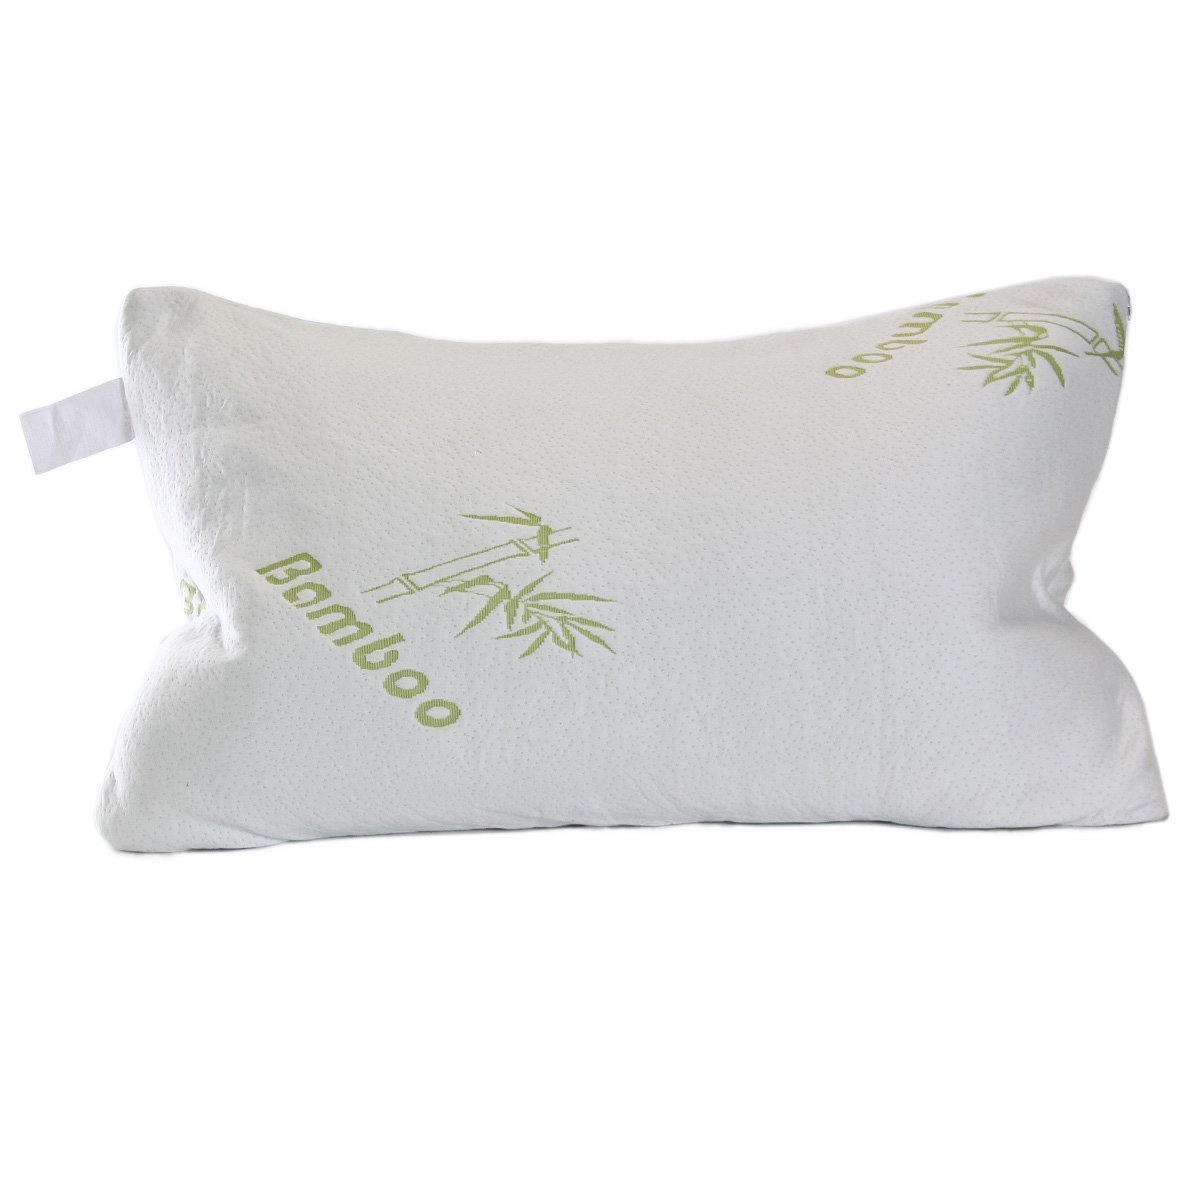 Best Seller: Original Bamboo Pillow with Adaptive Memory